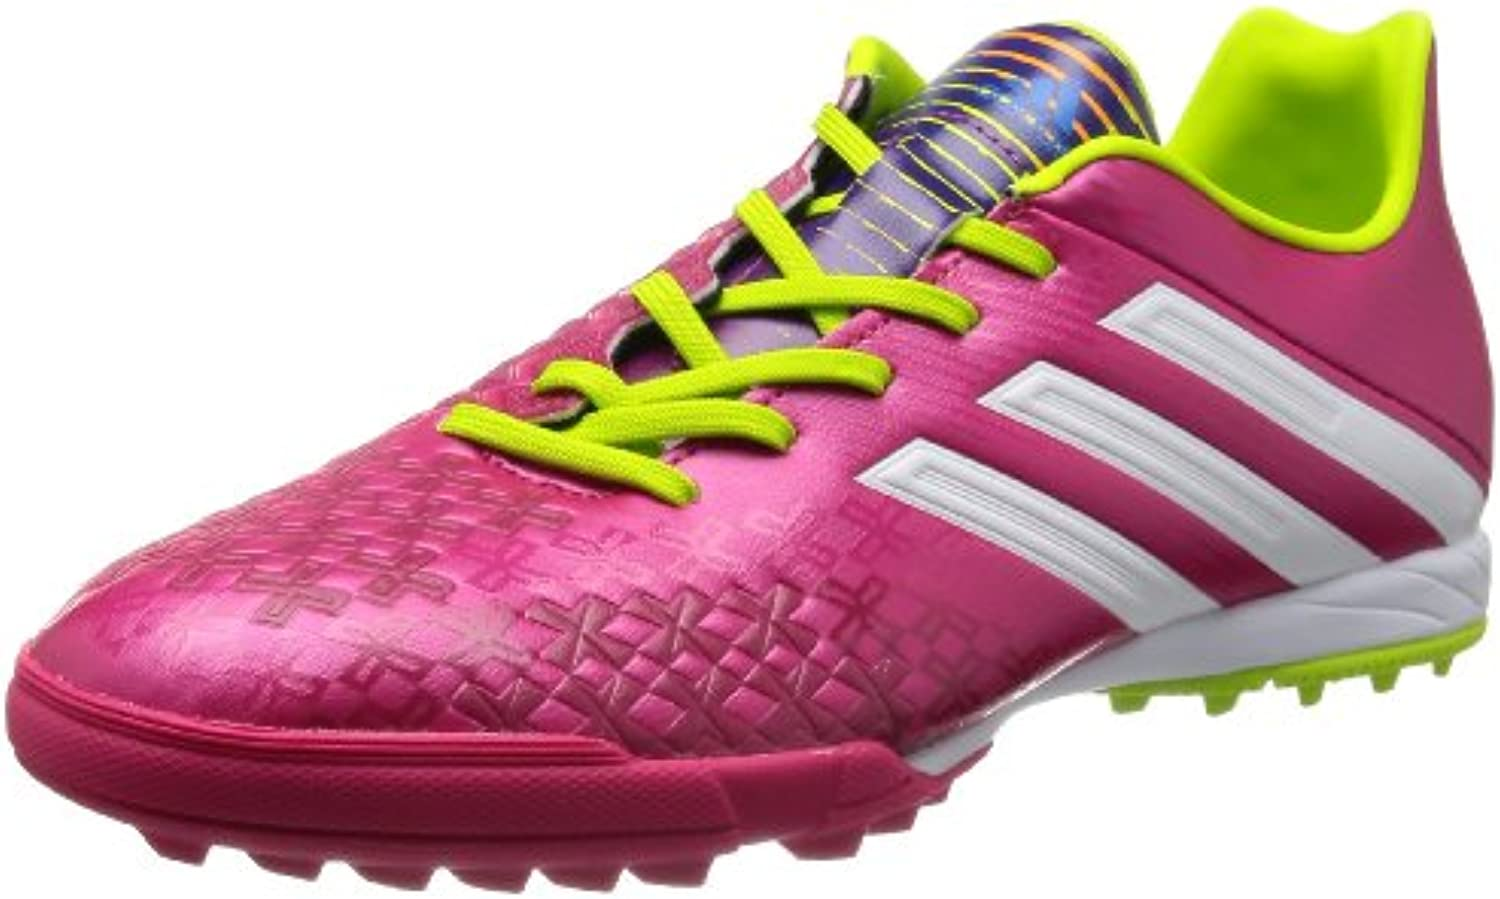 F32575|Adidas Predatorreg Absolado LZ TRX TF Vivid Berry|44 2/3 UK 10